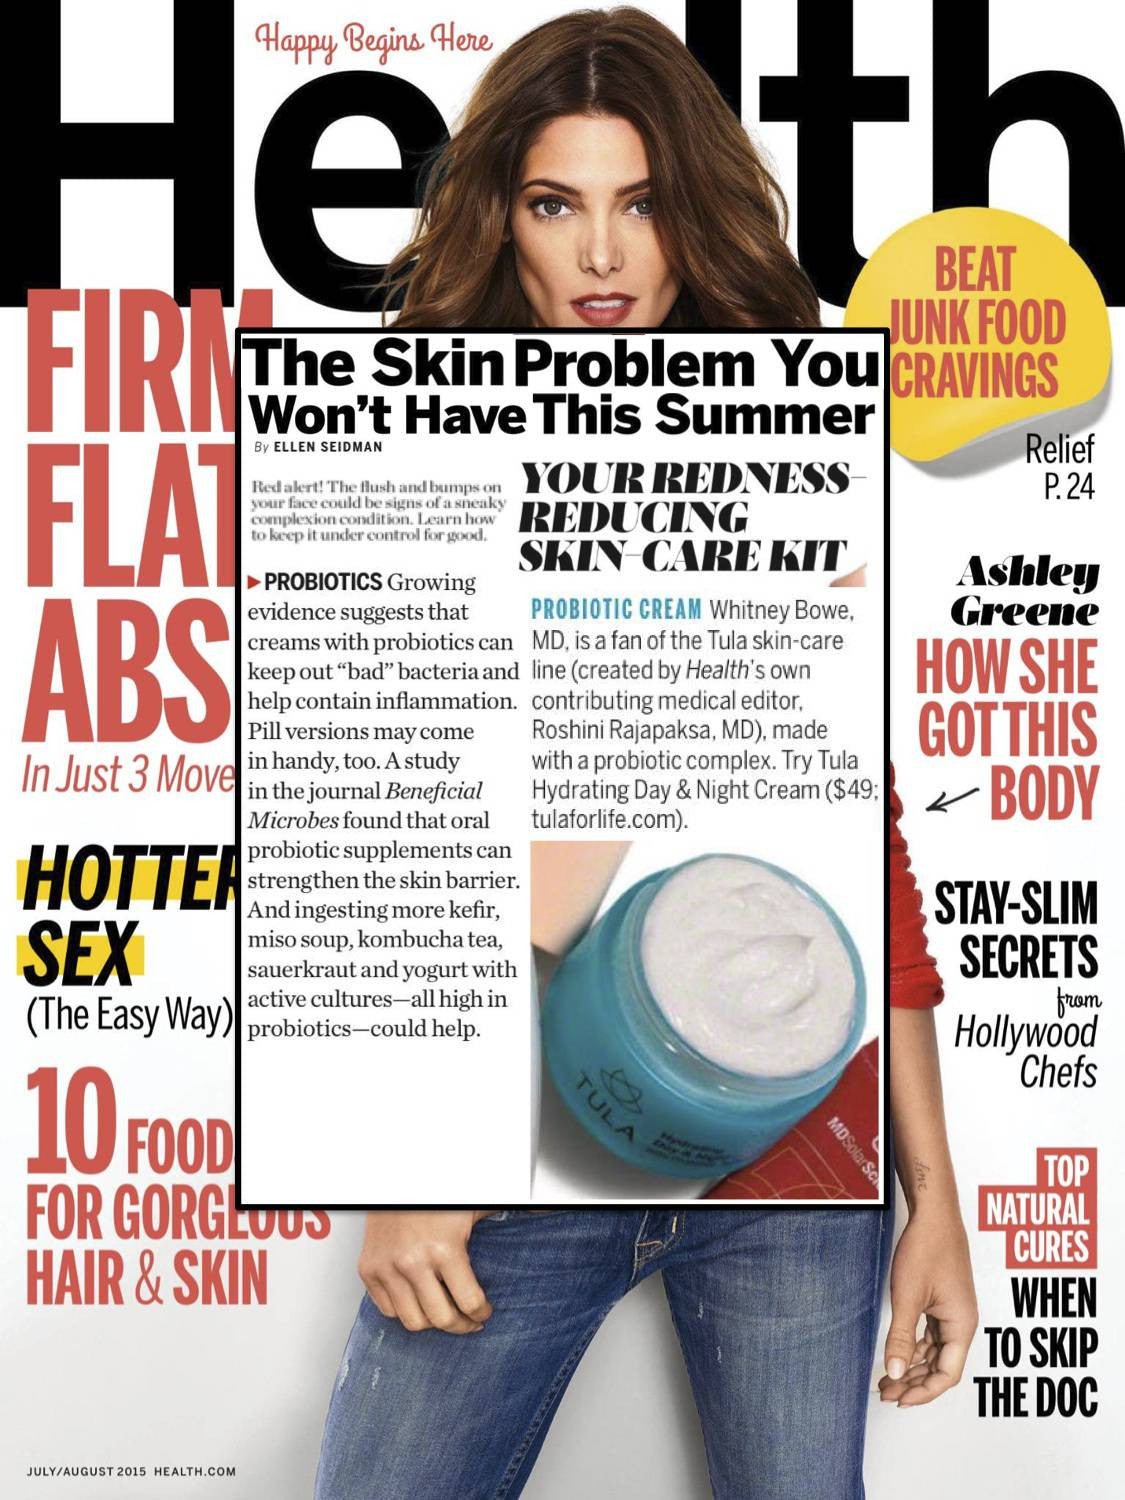 The Skin Problem You Won't Have This Summer - Health Magazine